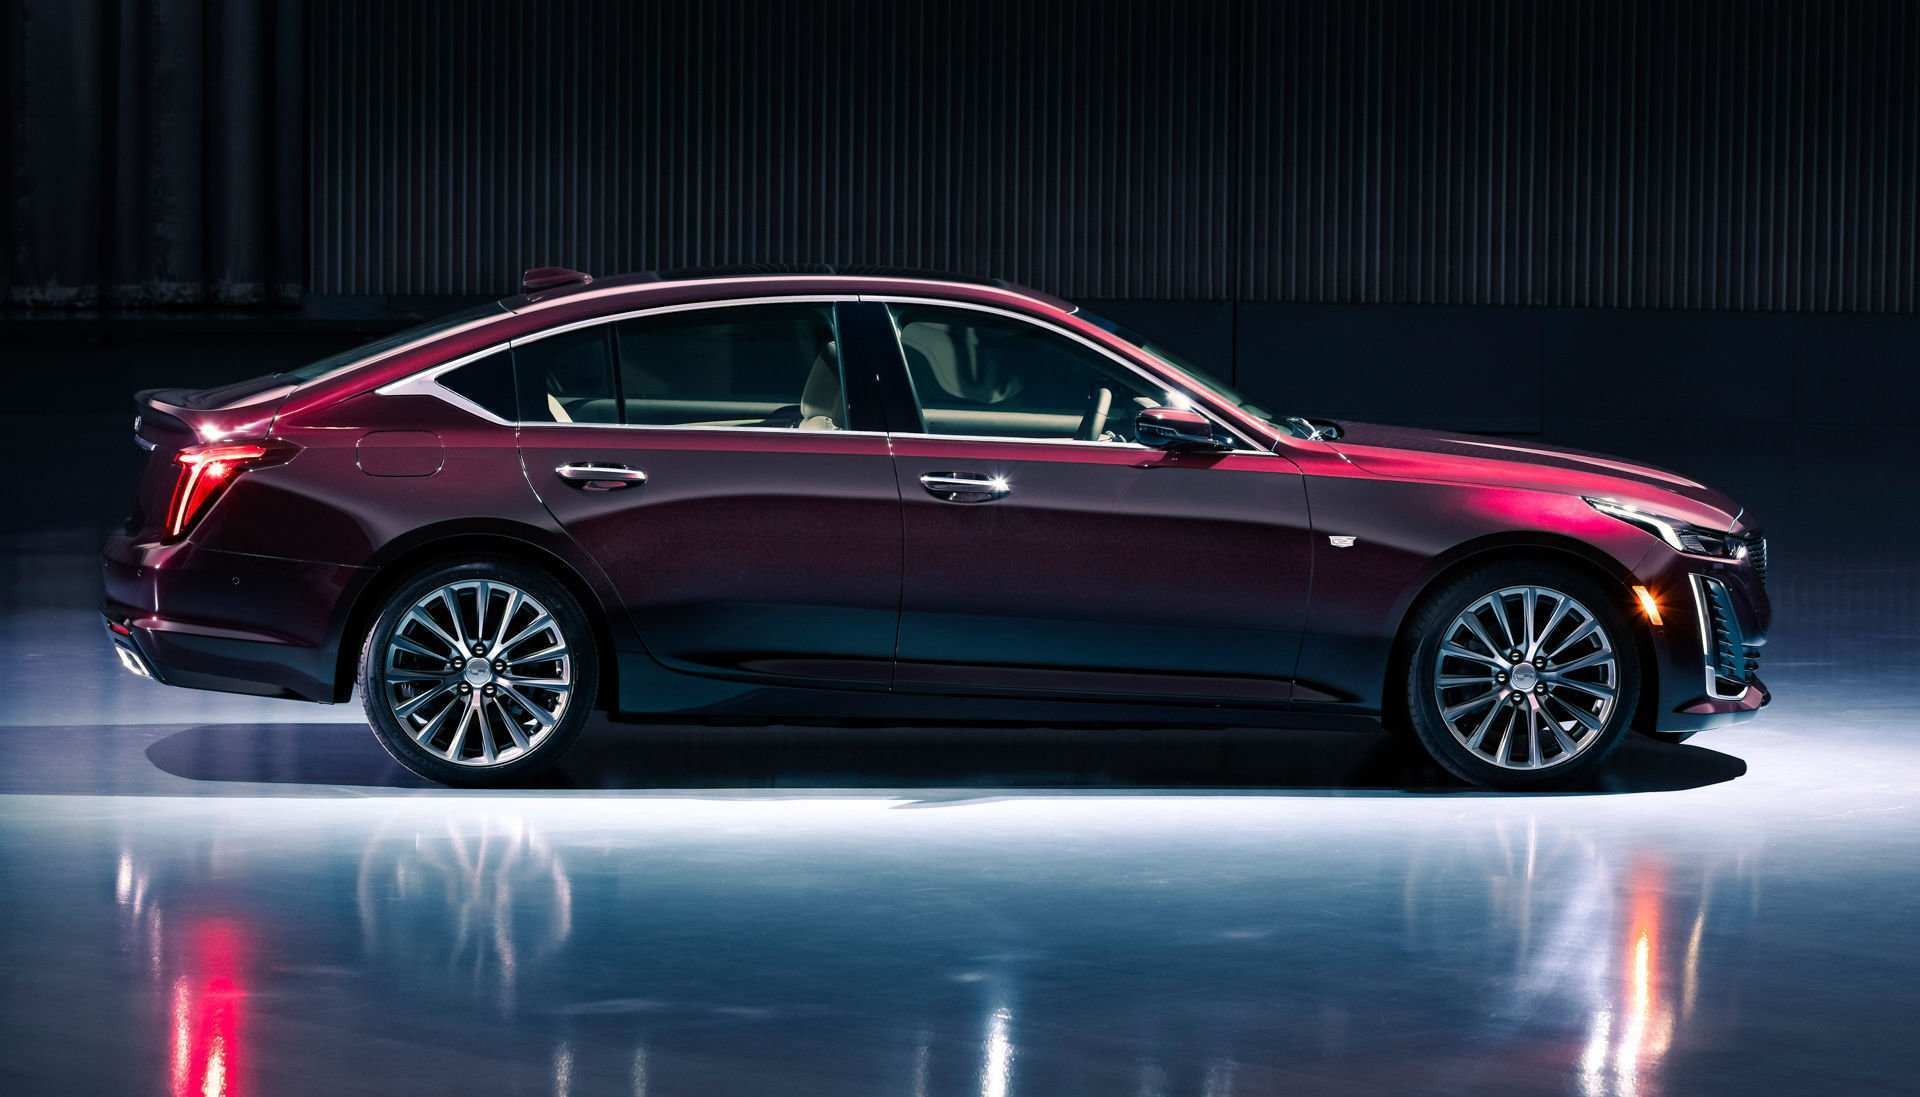 94 New Cadillac Super Cruise 2020 Spesification